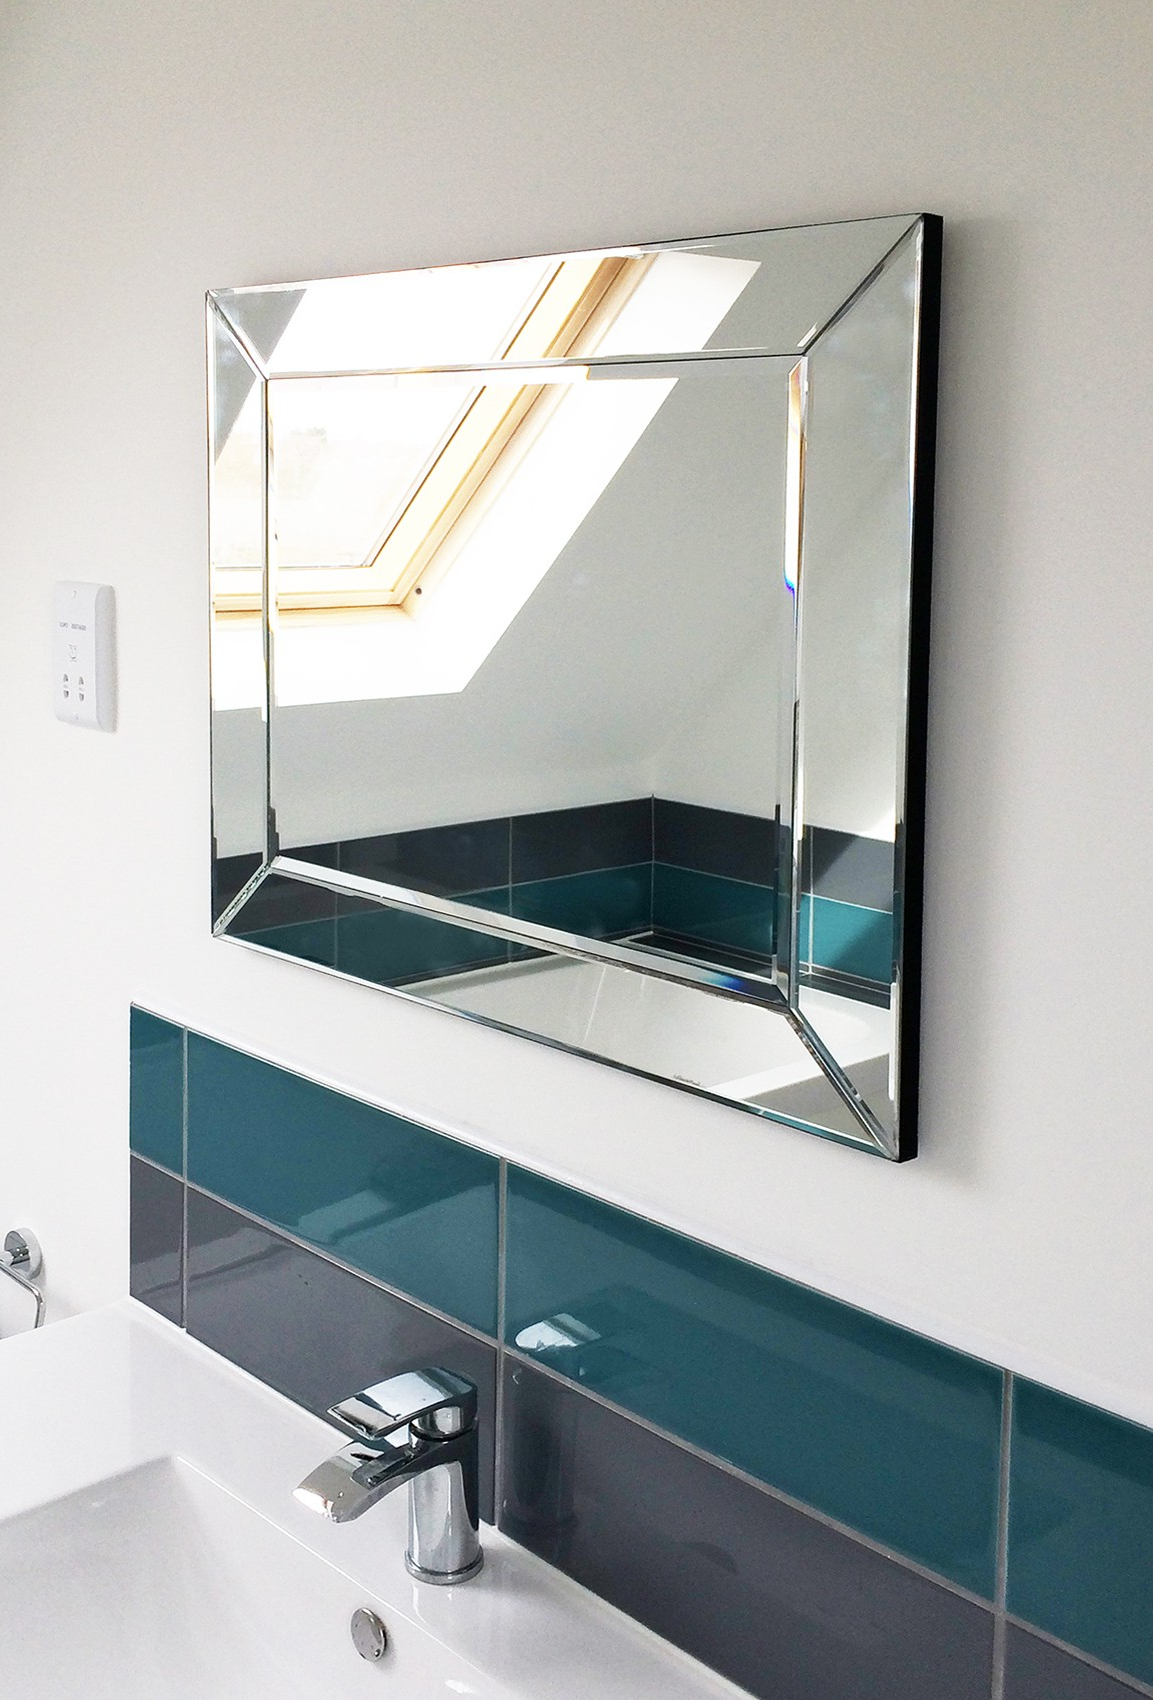 2019 Newton Contemporary Frameless Mirror (6 Sizes) With Regard To Contemporary Bathroom Wall Mirrors (View 12 of 20)